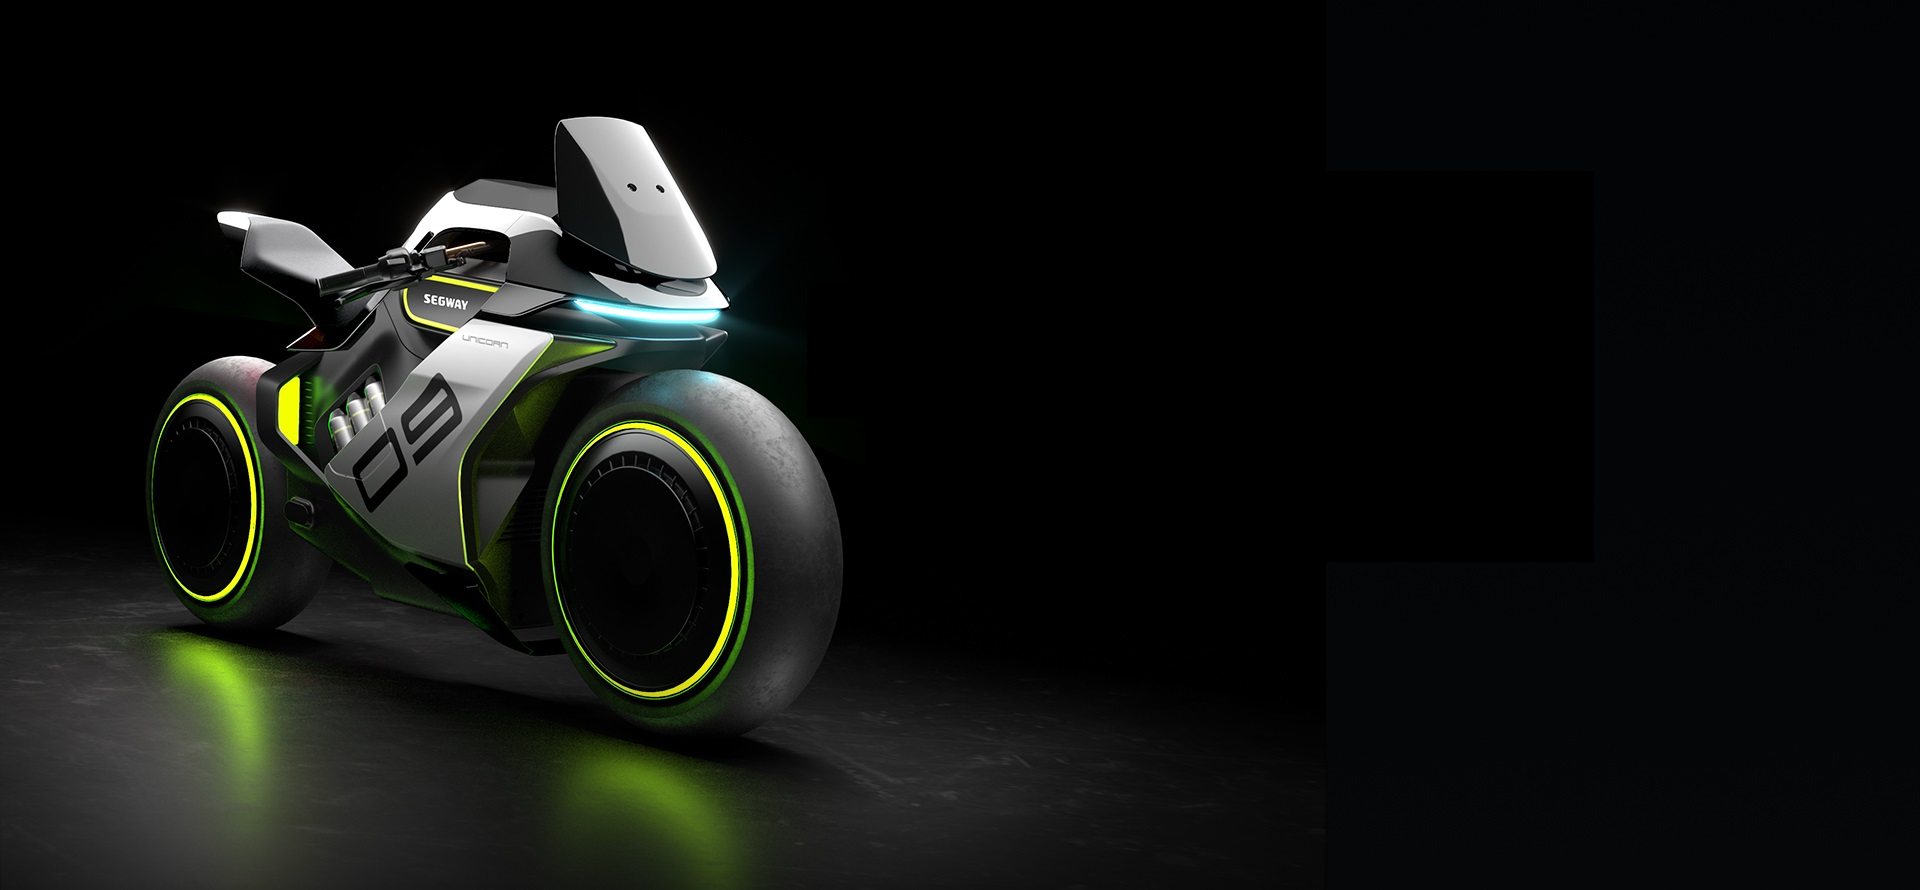 Segway APEX H2, A Hydrogen Hybrid Electric Motorcycle Unveiled, Here's what to expect.